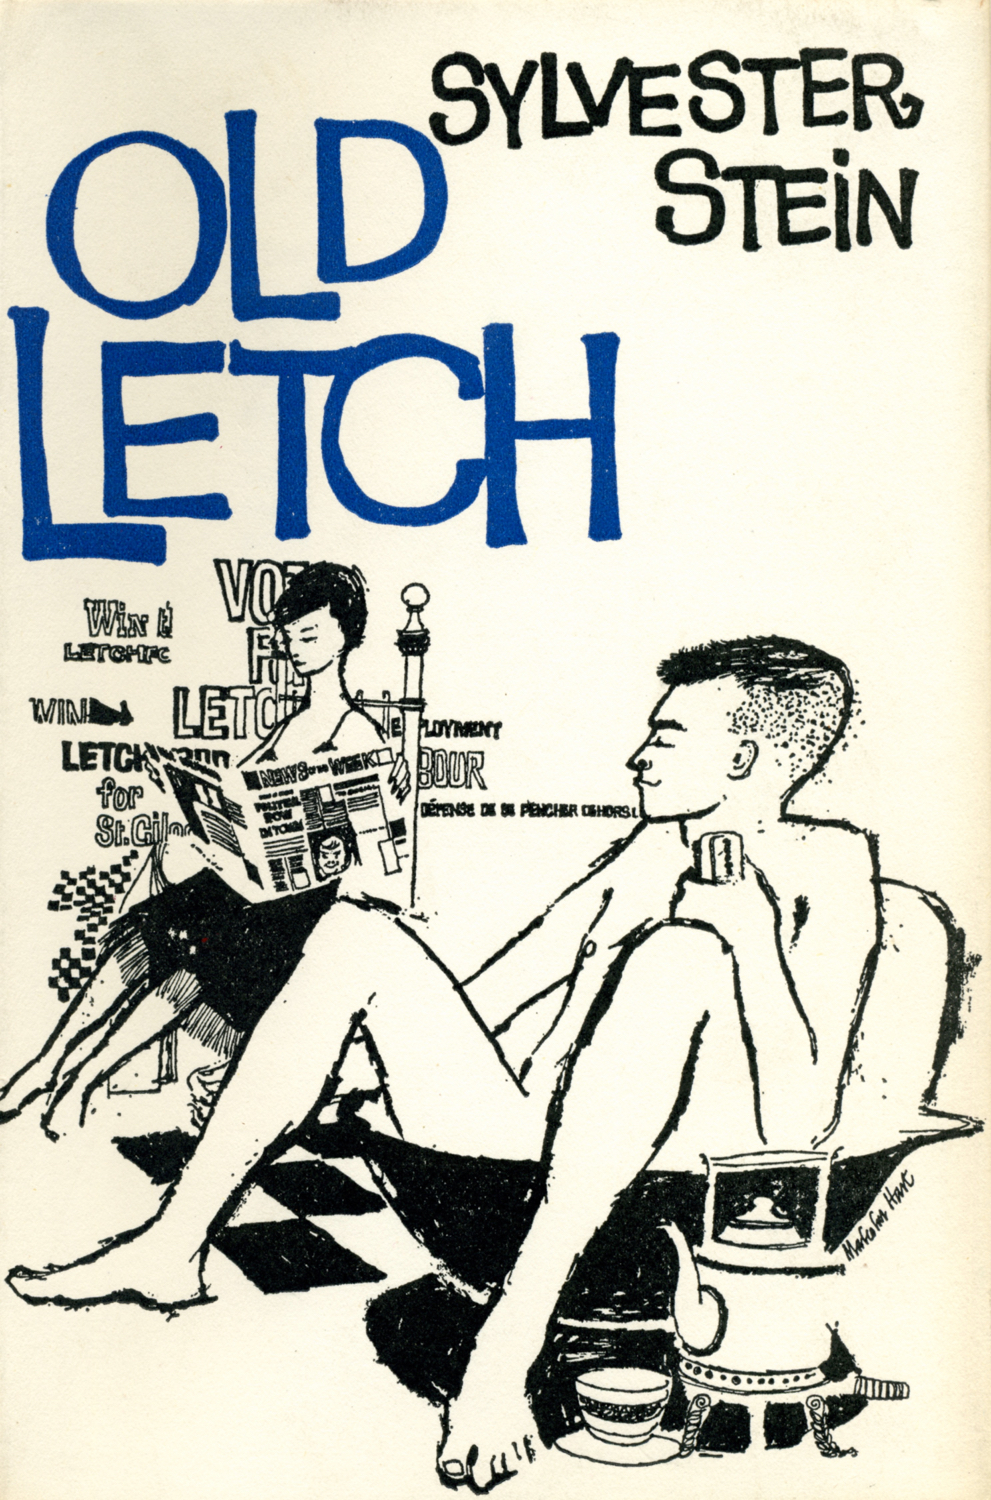 The Faber cover for Old Letch, designed by his friend Malcolm Hart.